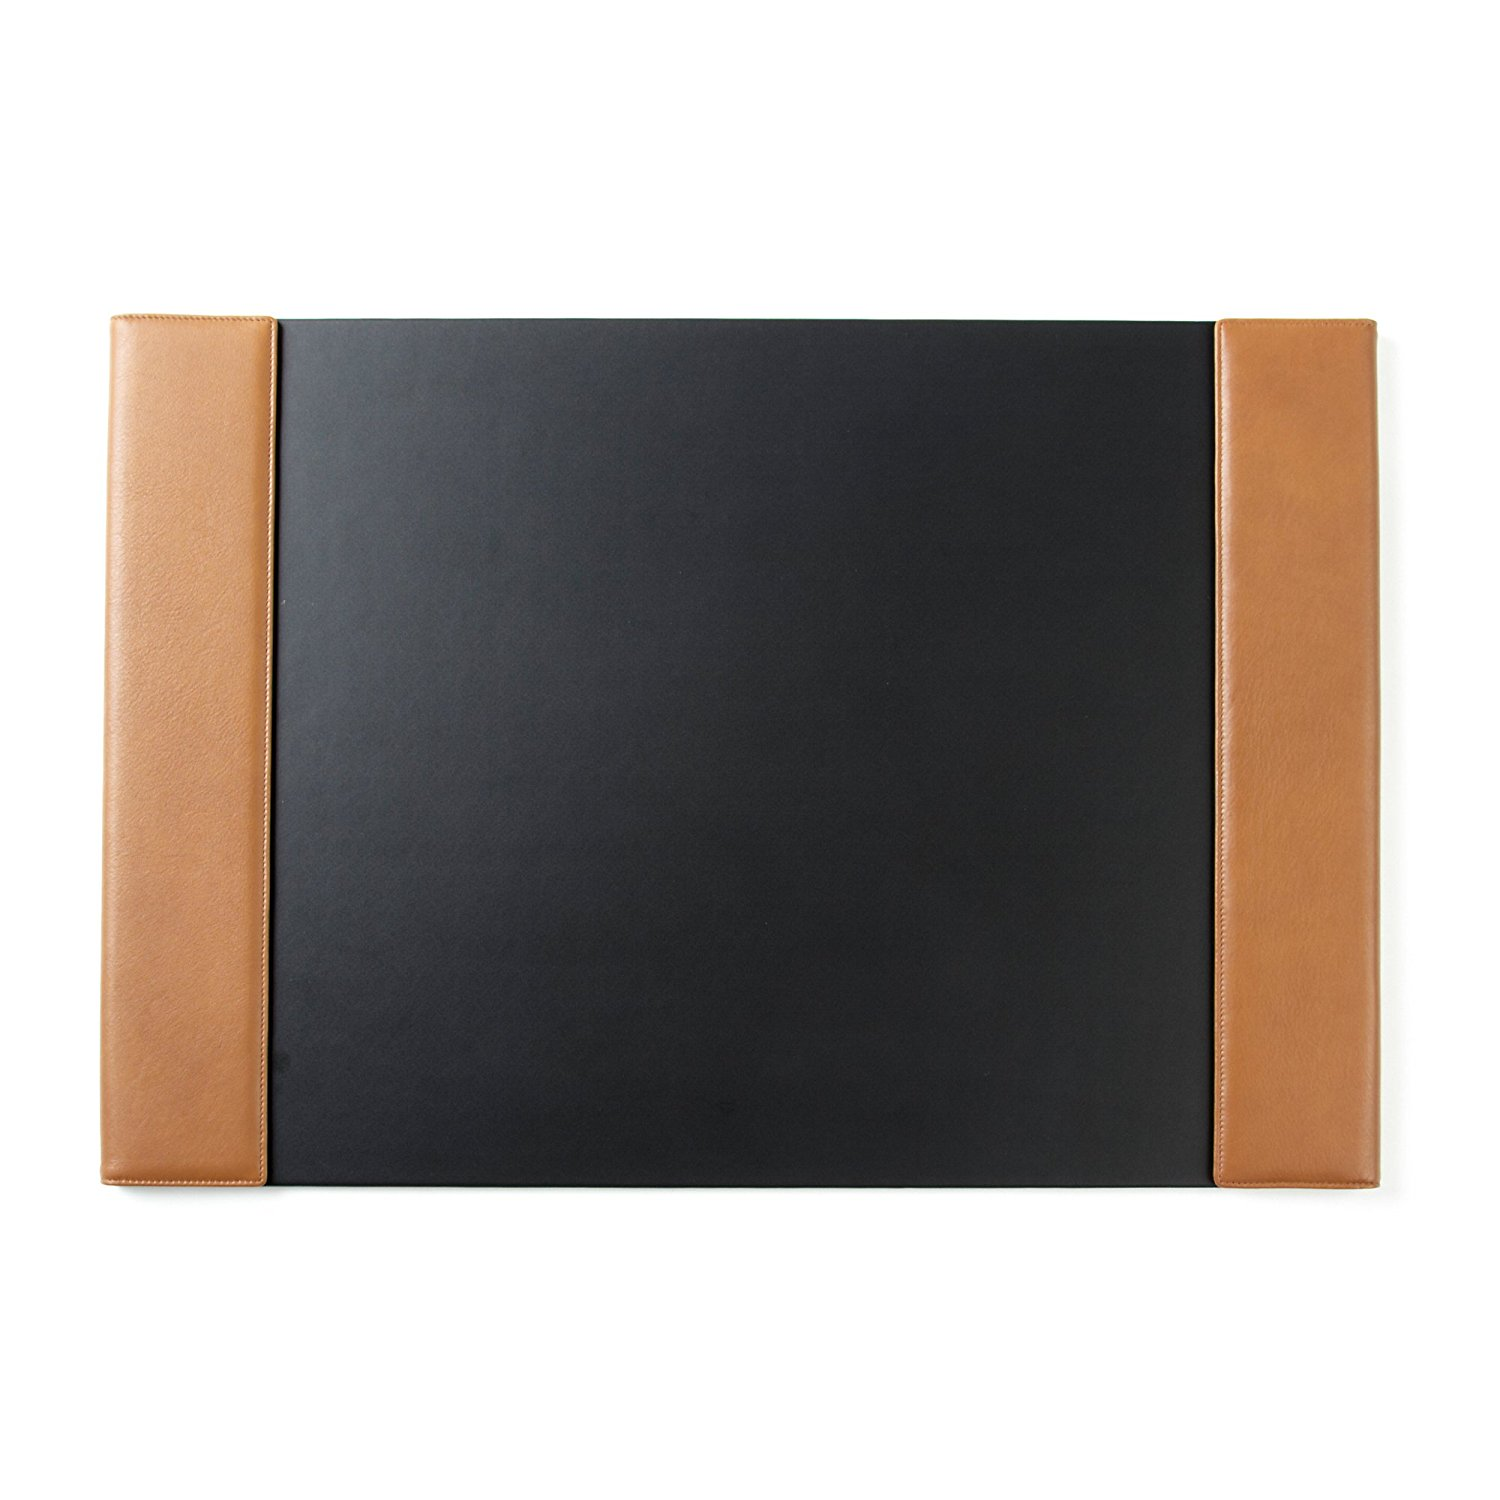 Cognac Brown Leather Desk Pad WAUCUST315